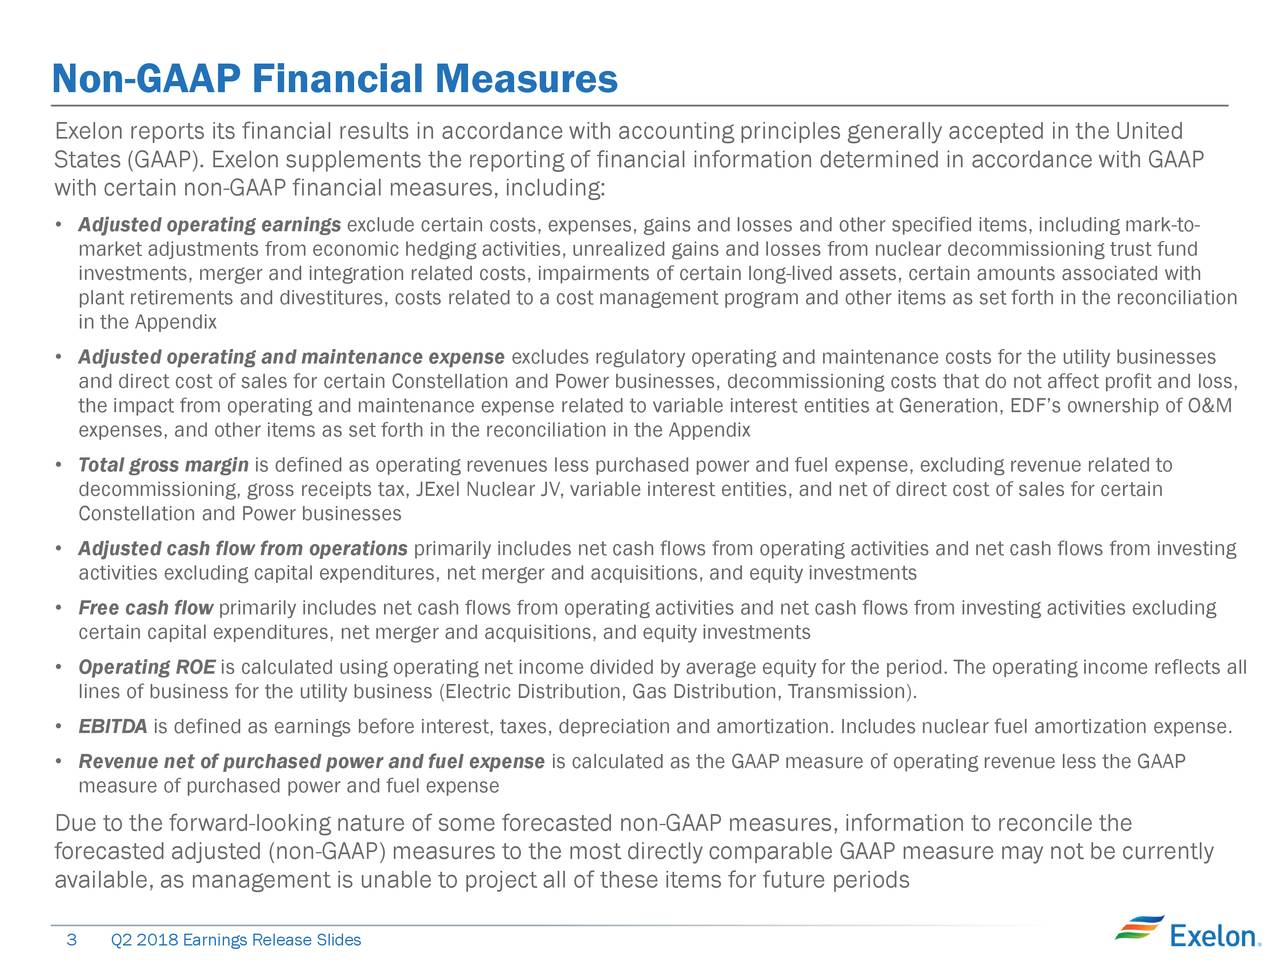 Exelon reports its financial results in accordance with accounting principles generally accepted in the United States (GAAP). Exelon supplements the reporting of financial information determined in accordance with GAAP with certain non-GAAP financial measures, including: • Adjusted operating earnings exclude certain costs, expenses, gains and losses and other specified items, including mark-to- market adjustments from economic hedging activities, unrealized gains and losses from nuclear decommissioning trust fund investments, merger and integration related costs, impairments of certain long-lived assets, certain amounts associated with plant retirements and divestitures, costs related to a cost management program and other items as set forth in the reconciliation in the Appendix • Adjusted operating and maintenance expense excludes regulatory operating and maintenance costs for the utility businesses and direct cost of sales for certain Constellation and Power businesses, decommissioning costs that do not affect profit and loss, the impact from operating and maintenance expense related to variable interest entities at Generation, EDF's ownership of O&M expenses, and other items as set forth in the reconciliation in the Appendix • Total gross margin is defined as operating revenues less purchased power and fuel expense, excluding revenue related to decommissioning, gross receipts tax, JExel Nuclear JV, variable interest entities, and net of direct cost of sales for certain Constellation and Power businesses • Adjusted cash flow from operations primarily includes net cash flows from operating activities and net cash flows from investing activities excluding capital expenditures, net merger and acquisitions, and equity investments • Free cash flow primarily includes net cash flows from operating activities and net cash flows from investing activities excluding certain capital expenditures, net merger and acquisitions, and equity investments • Operating ROE is calculate